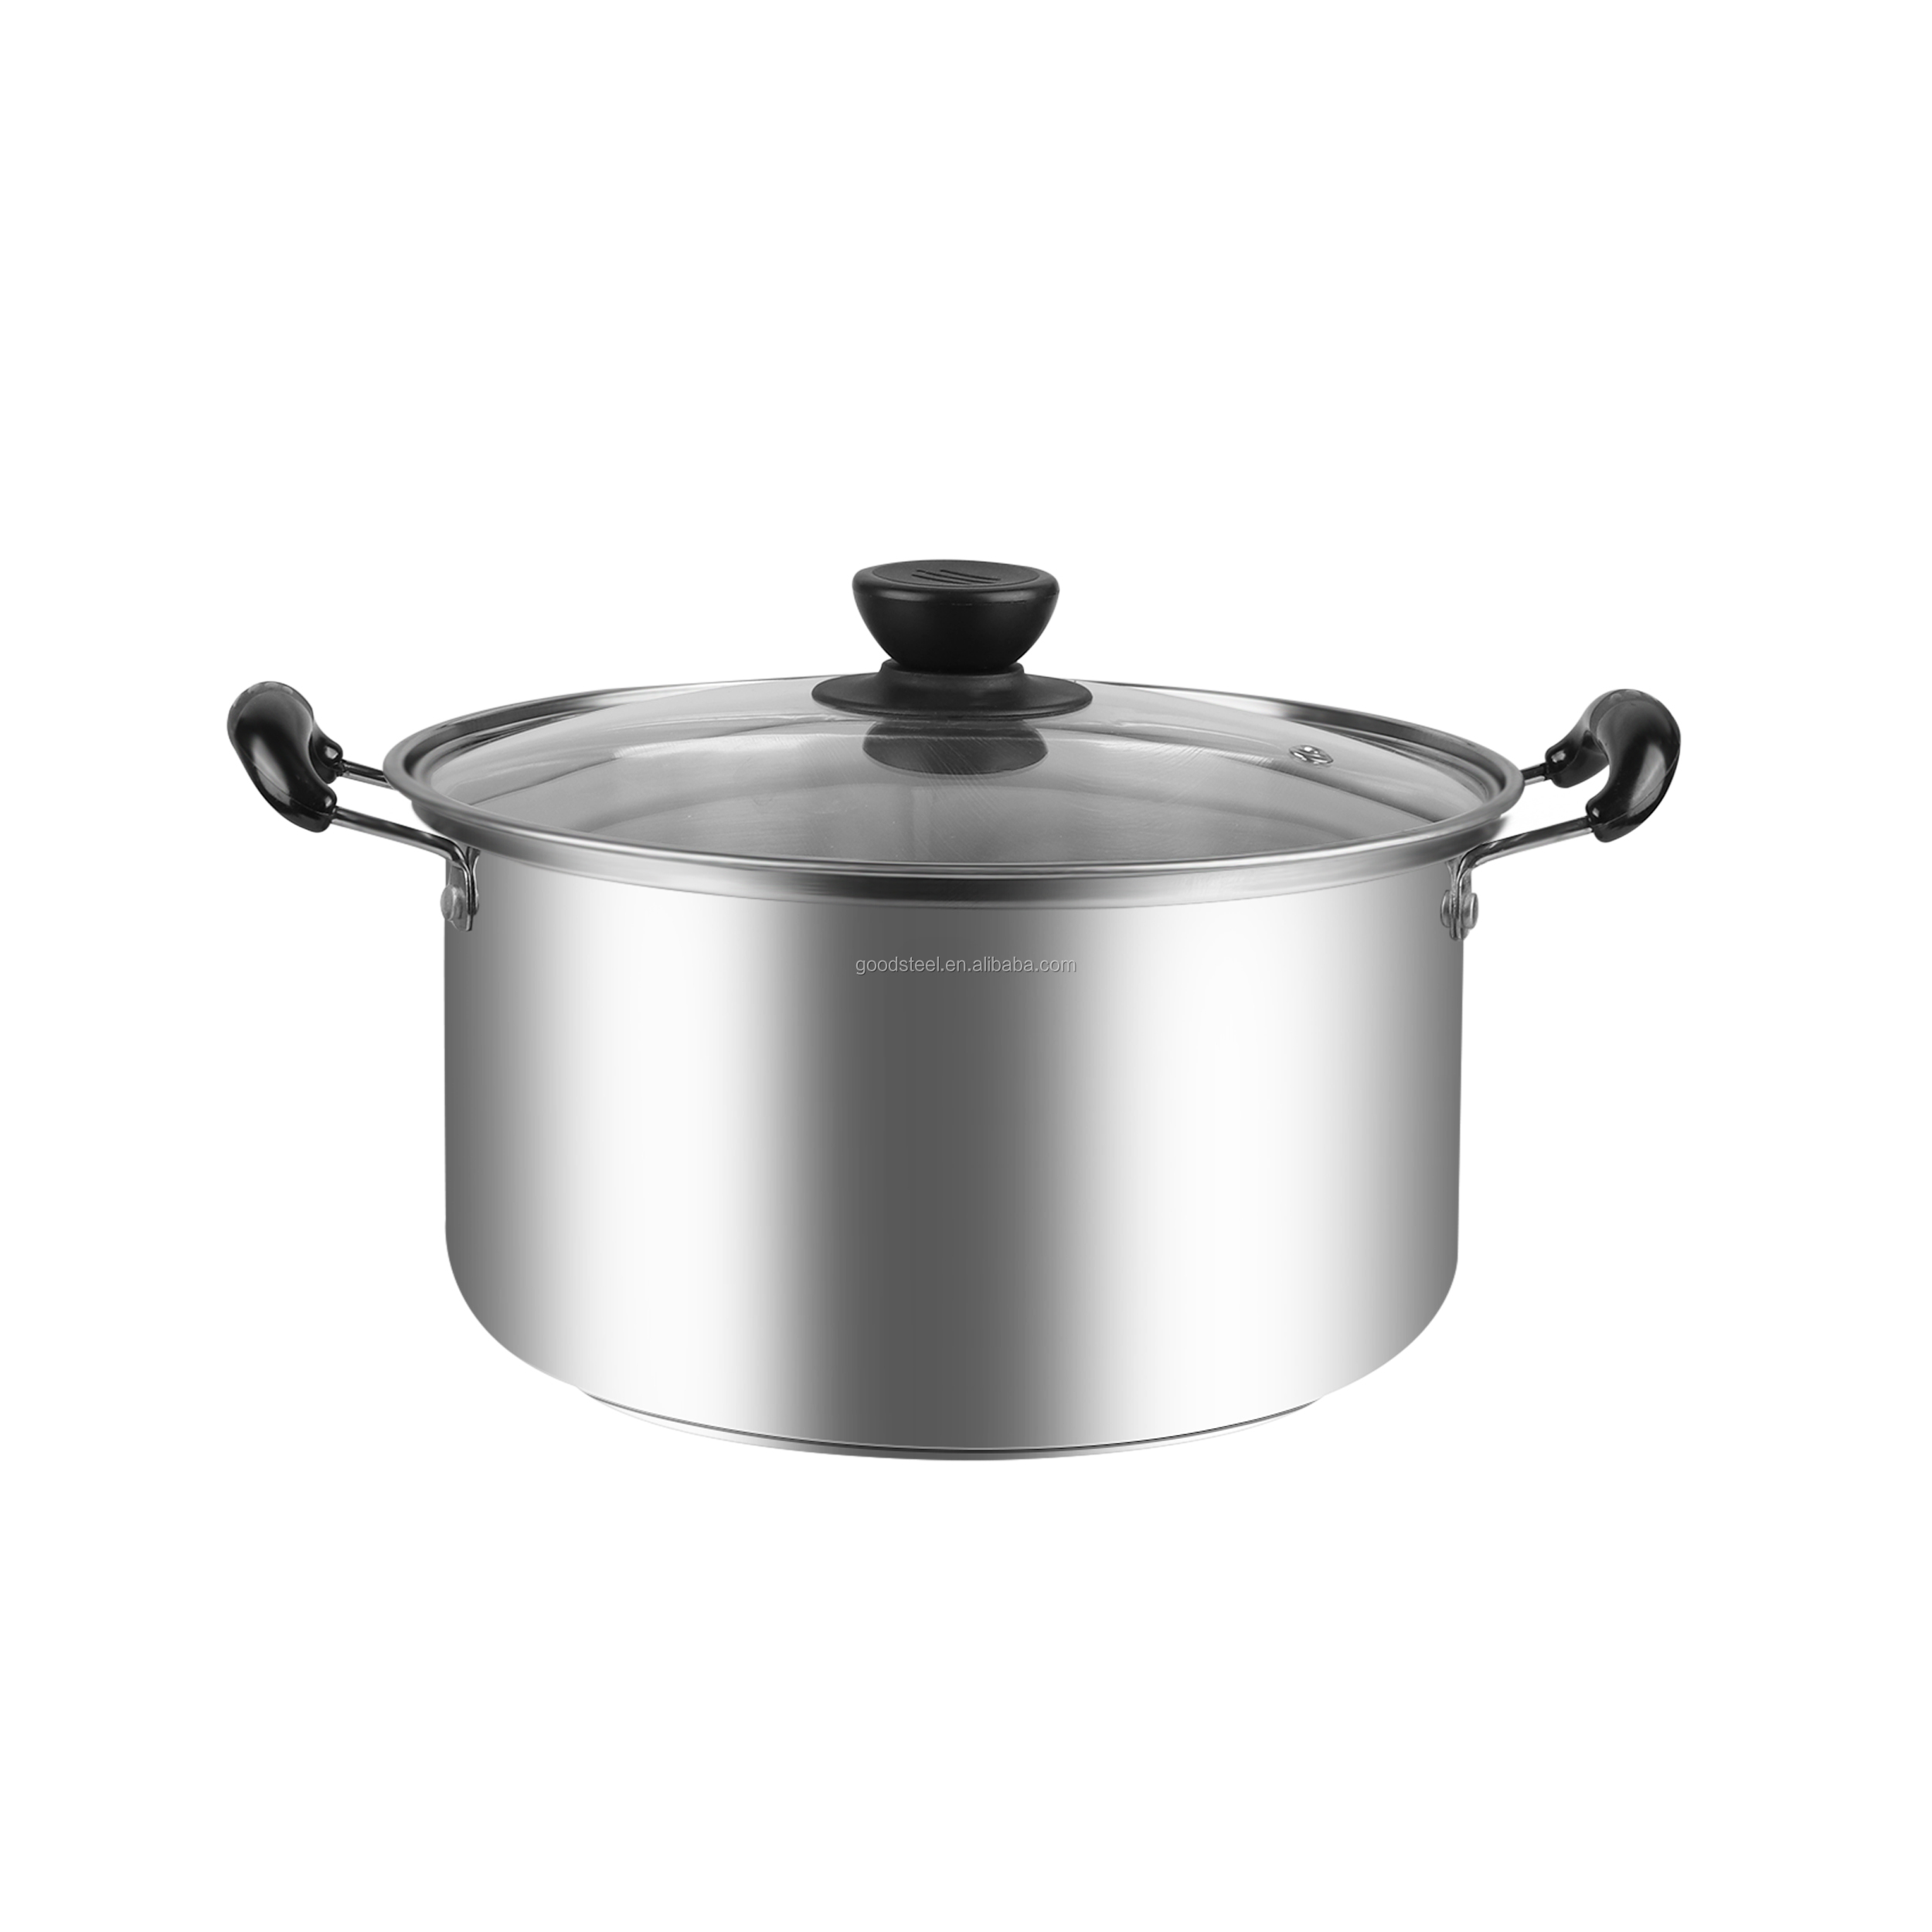 24cm kitchen stainless steel casserole cooking pot with single induction bottom